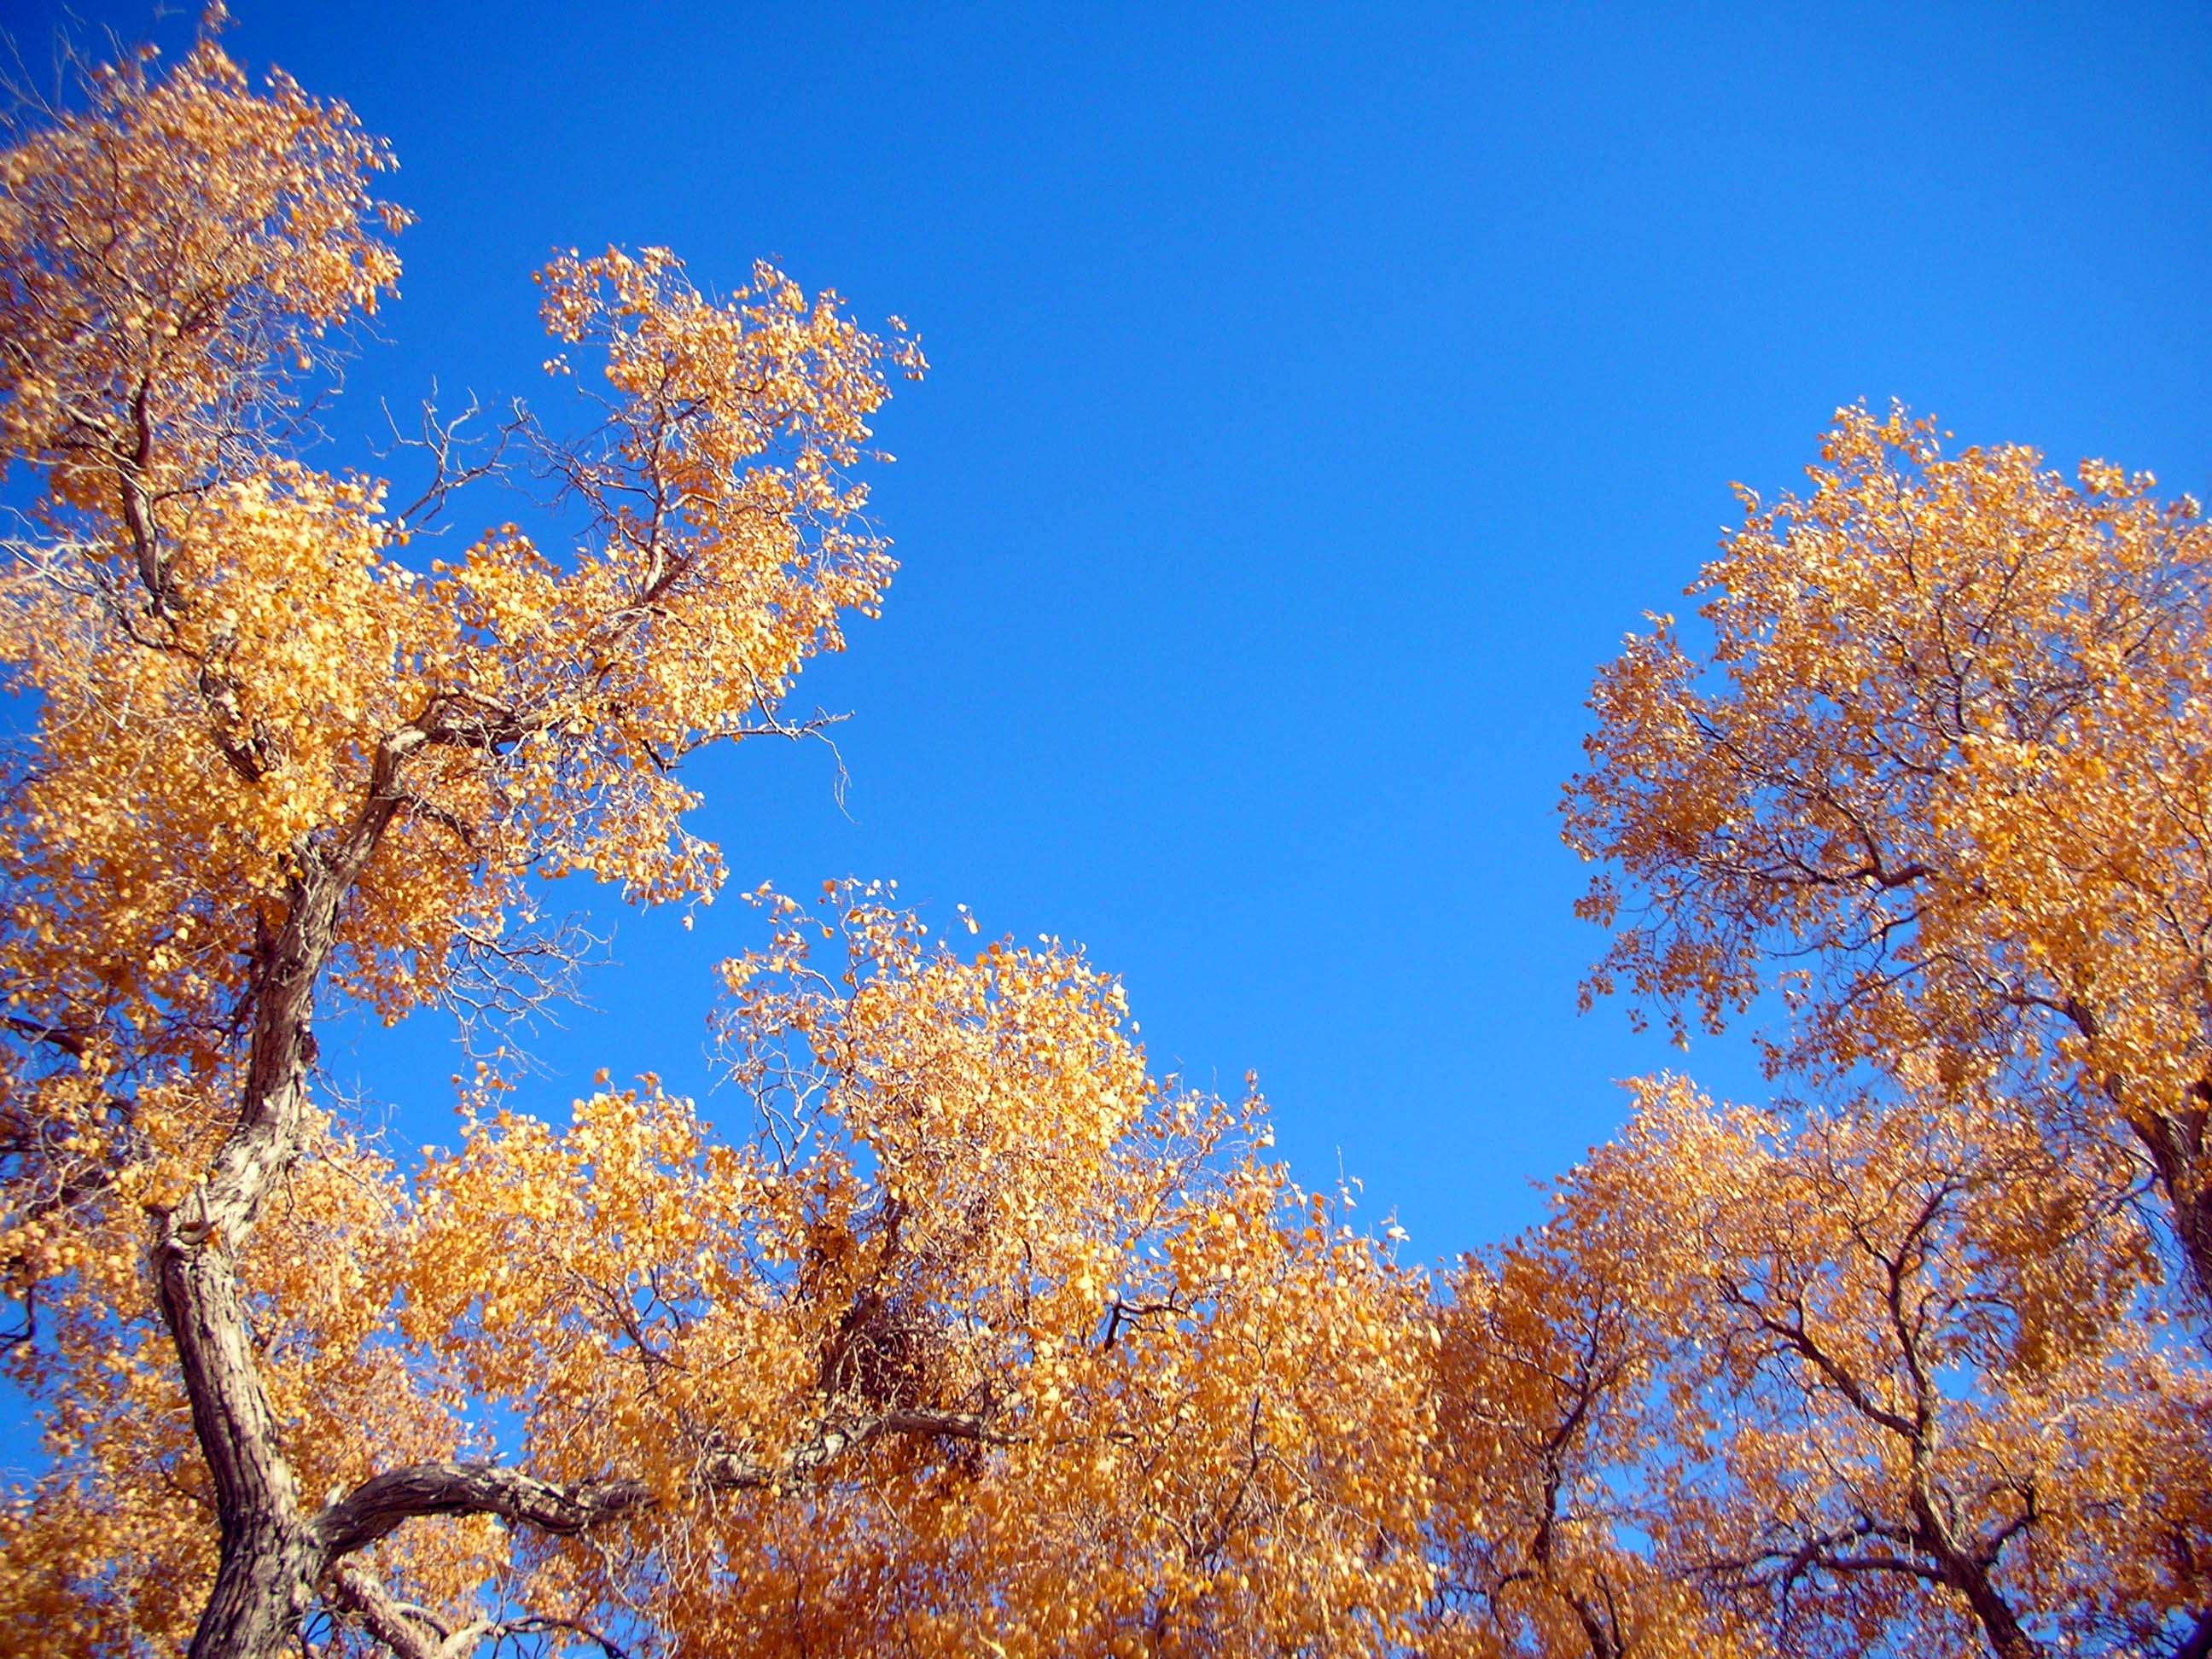 Xinjiang's diversifolius poplar trees are spectacular against a clear autumn sky.